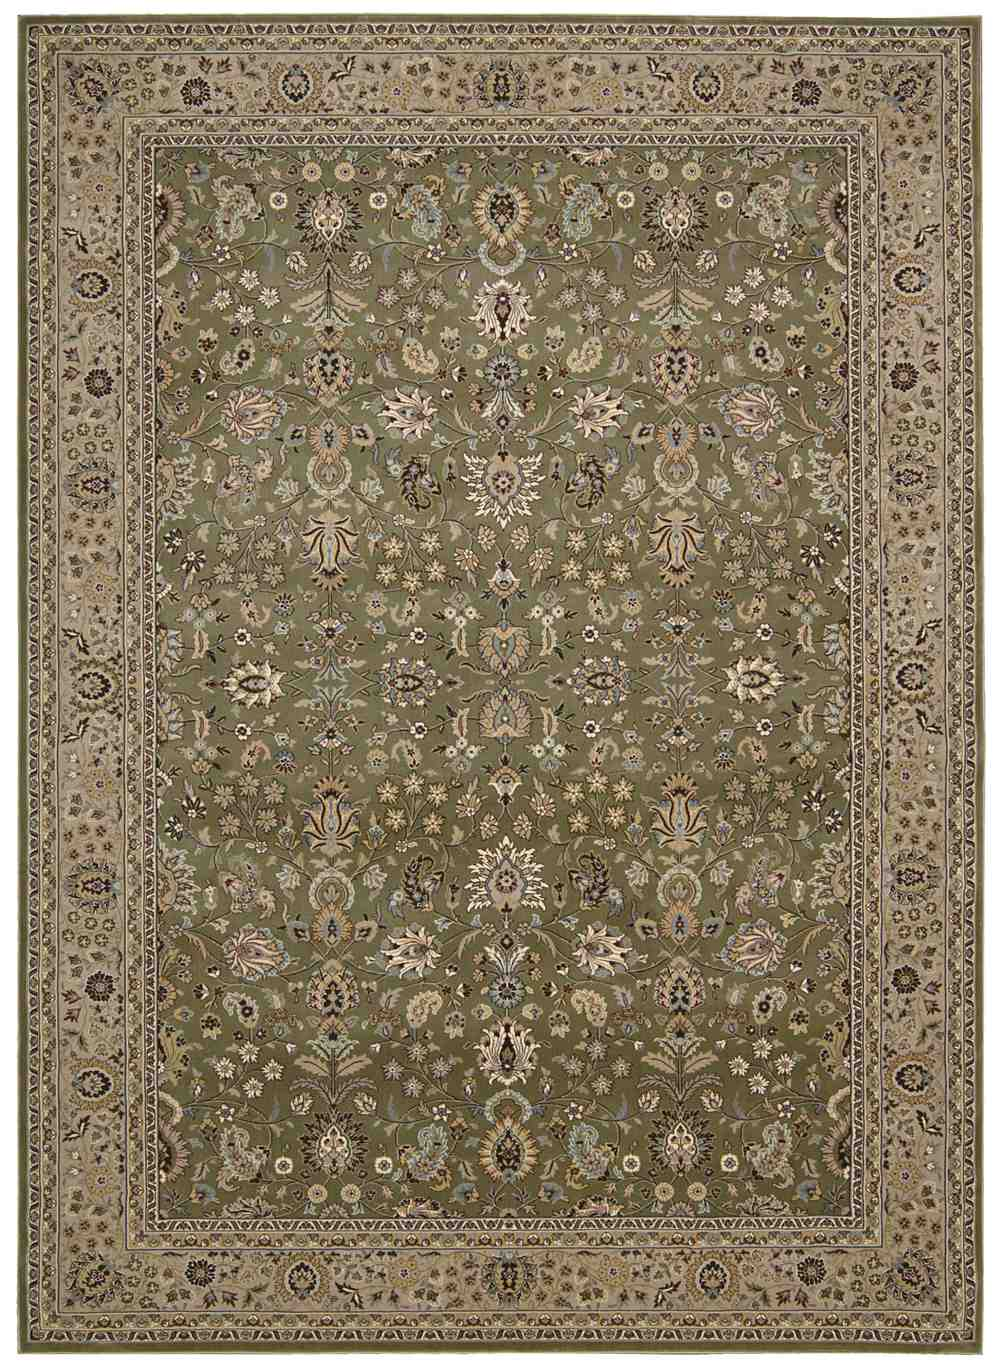 Nourison Kathy Ireland Antiquities Ant04 Sage Area Rug